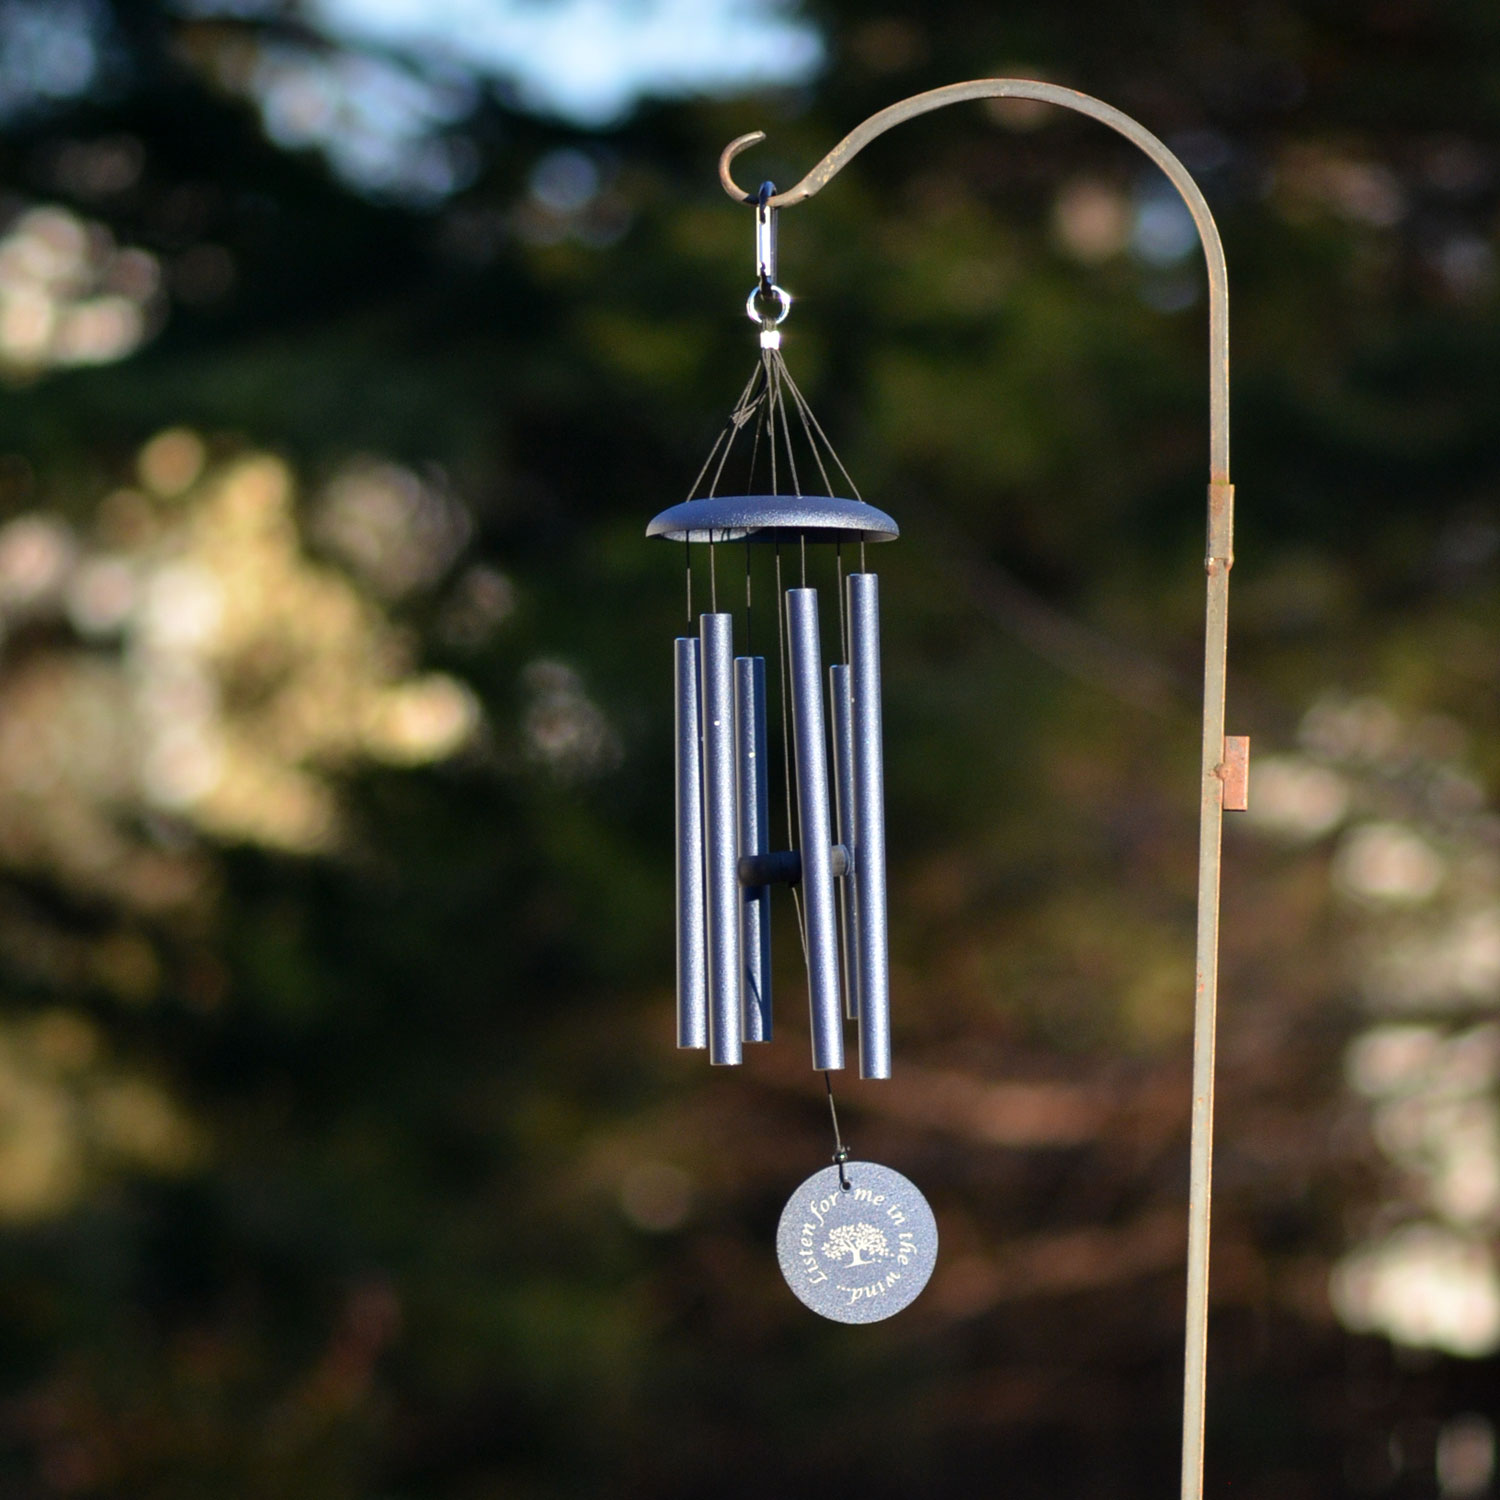 Listen to the Wind - Corinthian Bells 30-inch Chime